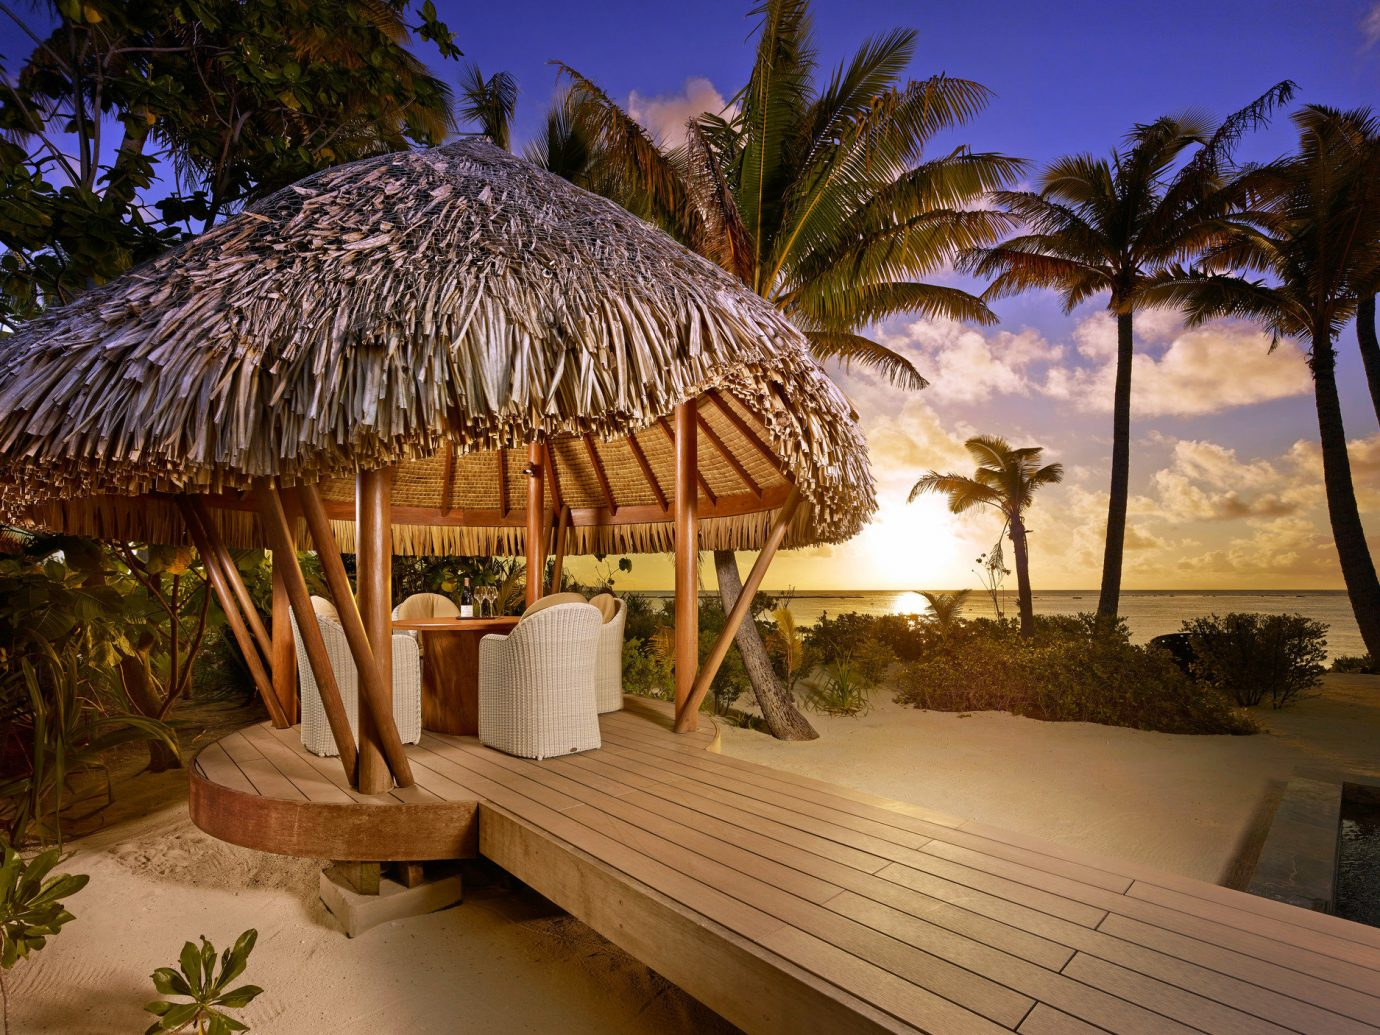 Beach Dining golden hour Hotels isolation majestic Ocean outdoor dining private private dining remote Romance Romantic serene Sunset Tropical white sands tree Resort vacation estate arecales Villa plant palm hut furniture decorated